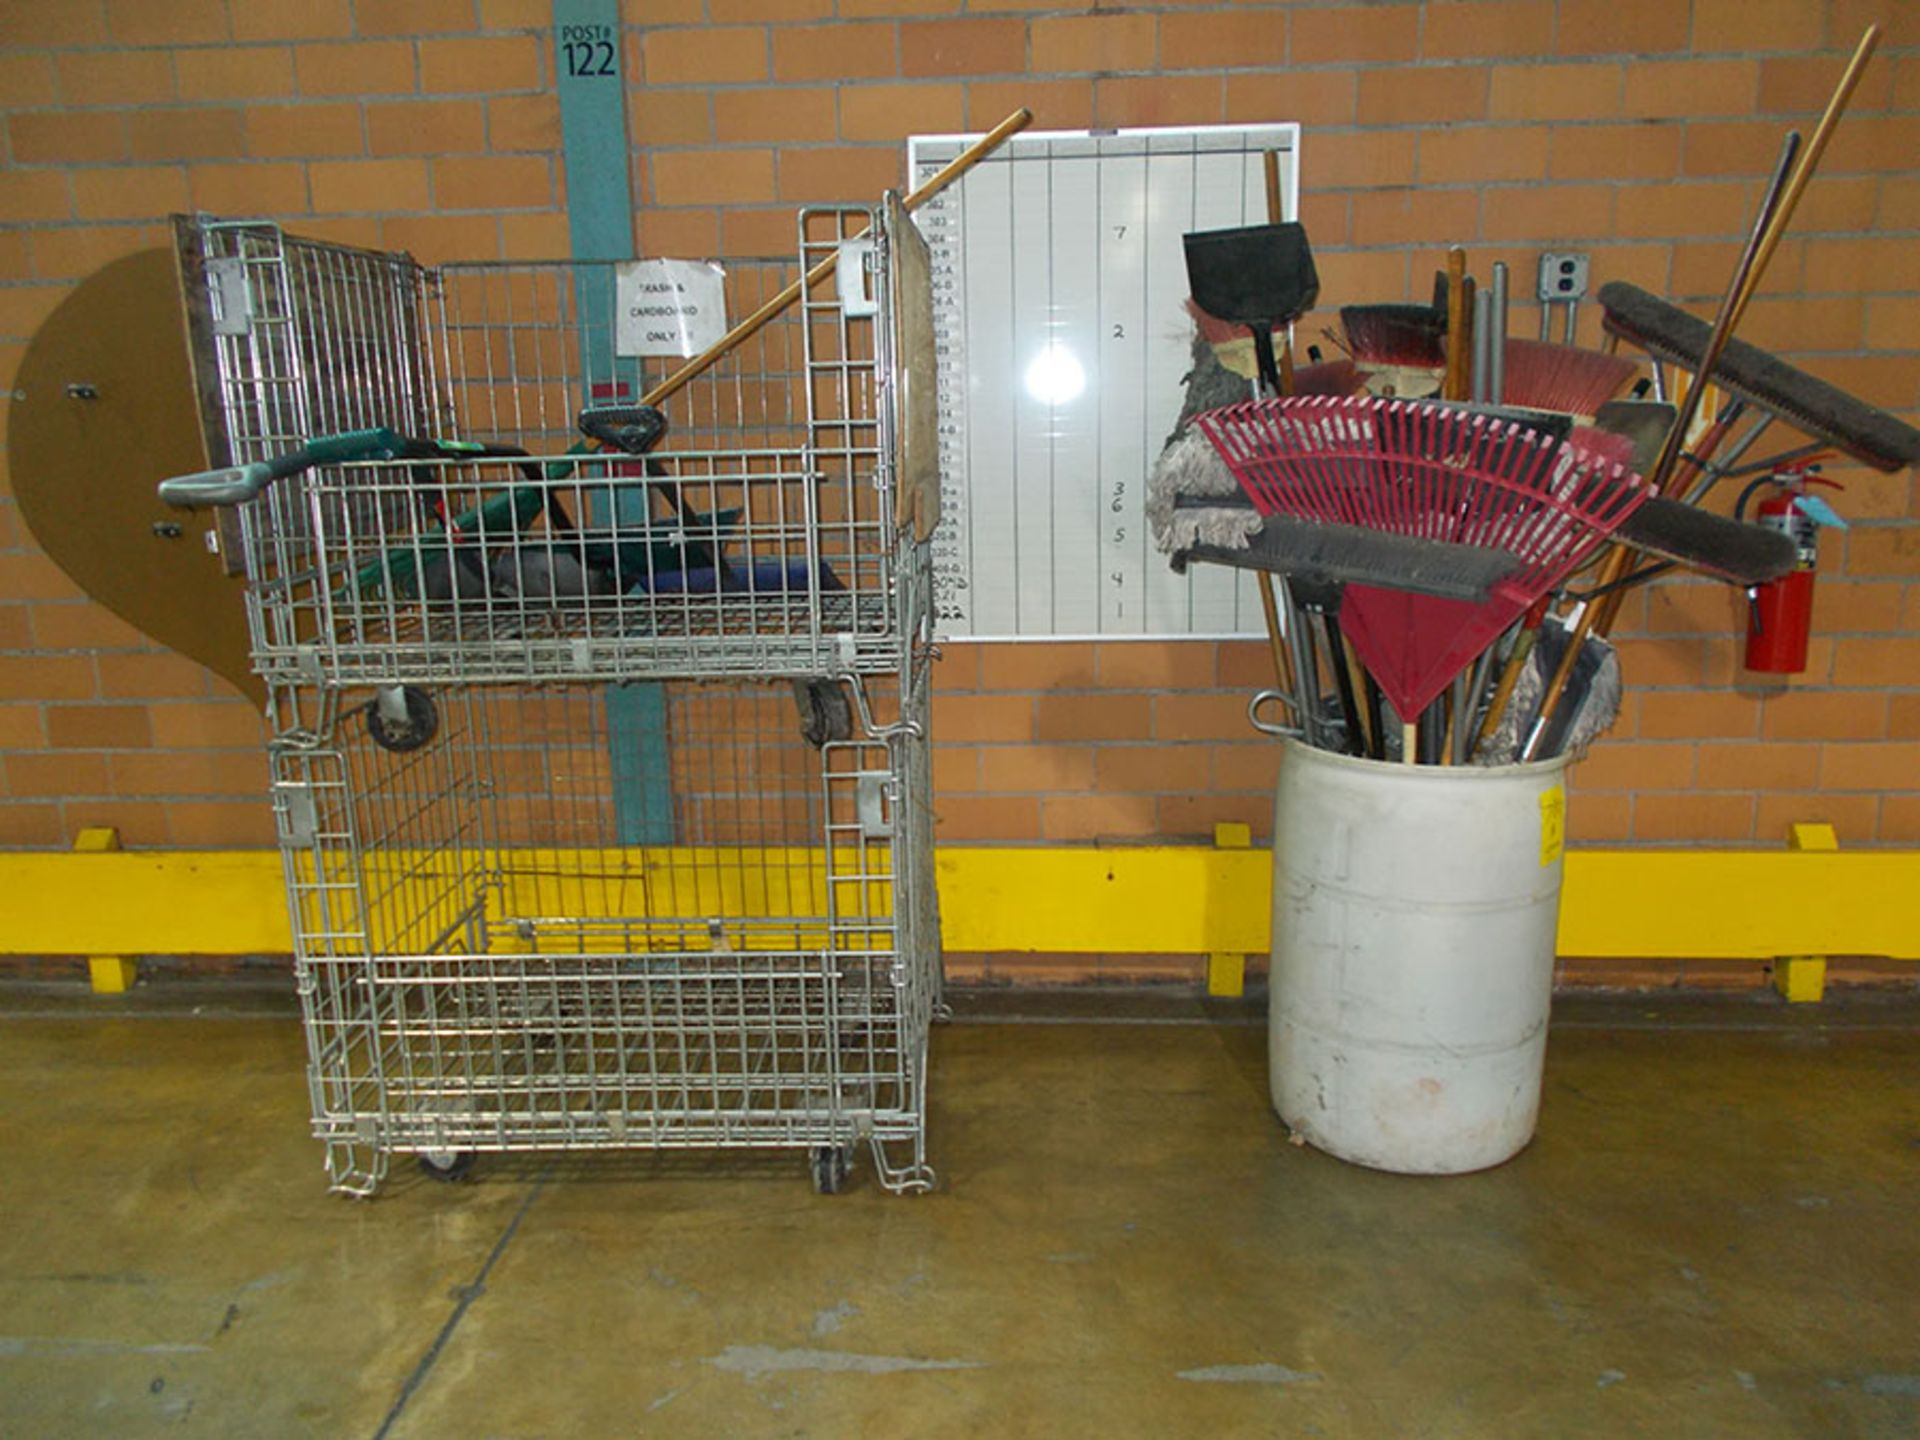 Lot 781A - (2) 4' X 3' STACK-ABLE ROLLING CARTS & PLASTIC DRUM WITH BROOMS, SHOVELS, DUST MOPS, ETC.